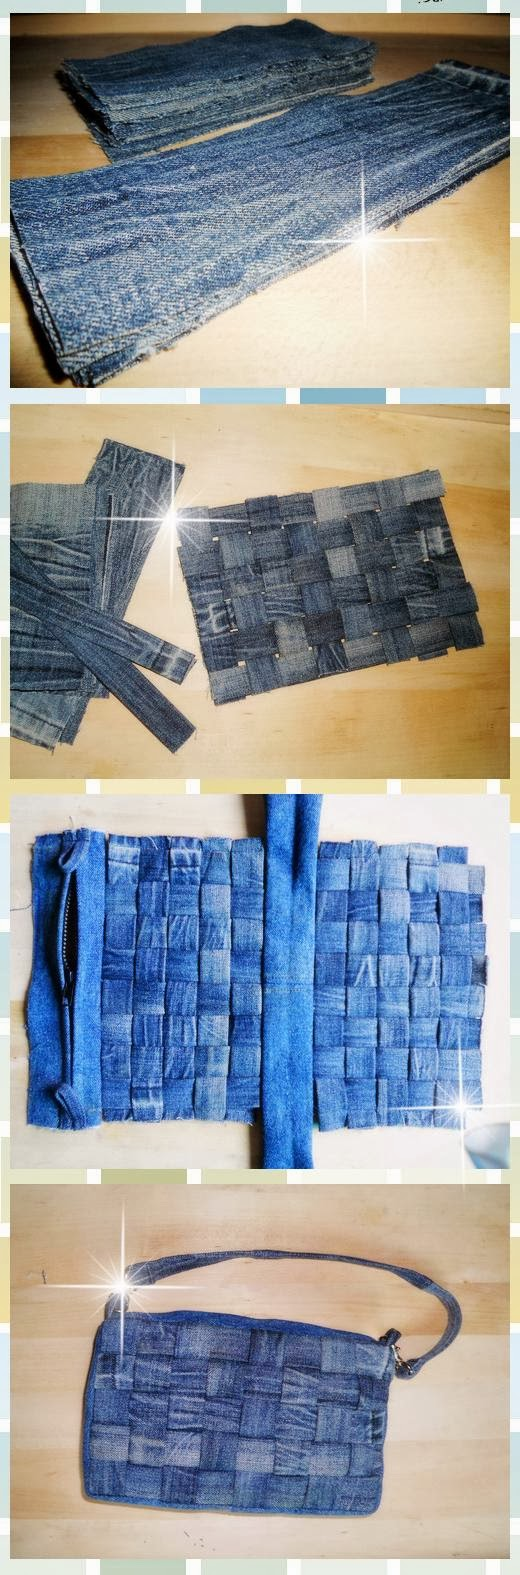 My DIY Projects: Diy Small Checkerboard Bag | My Home Decor ...